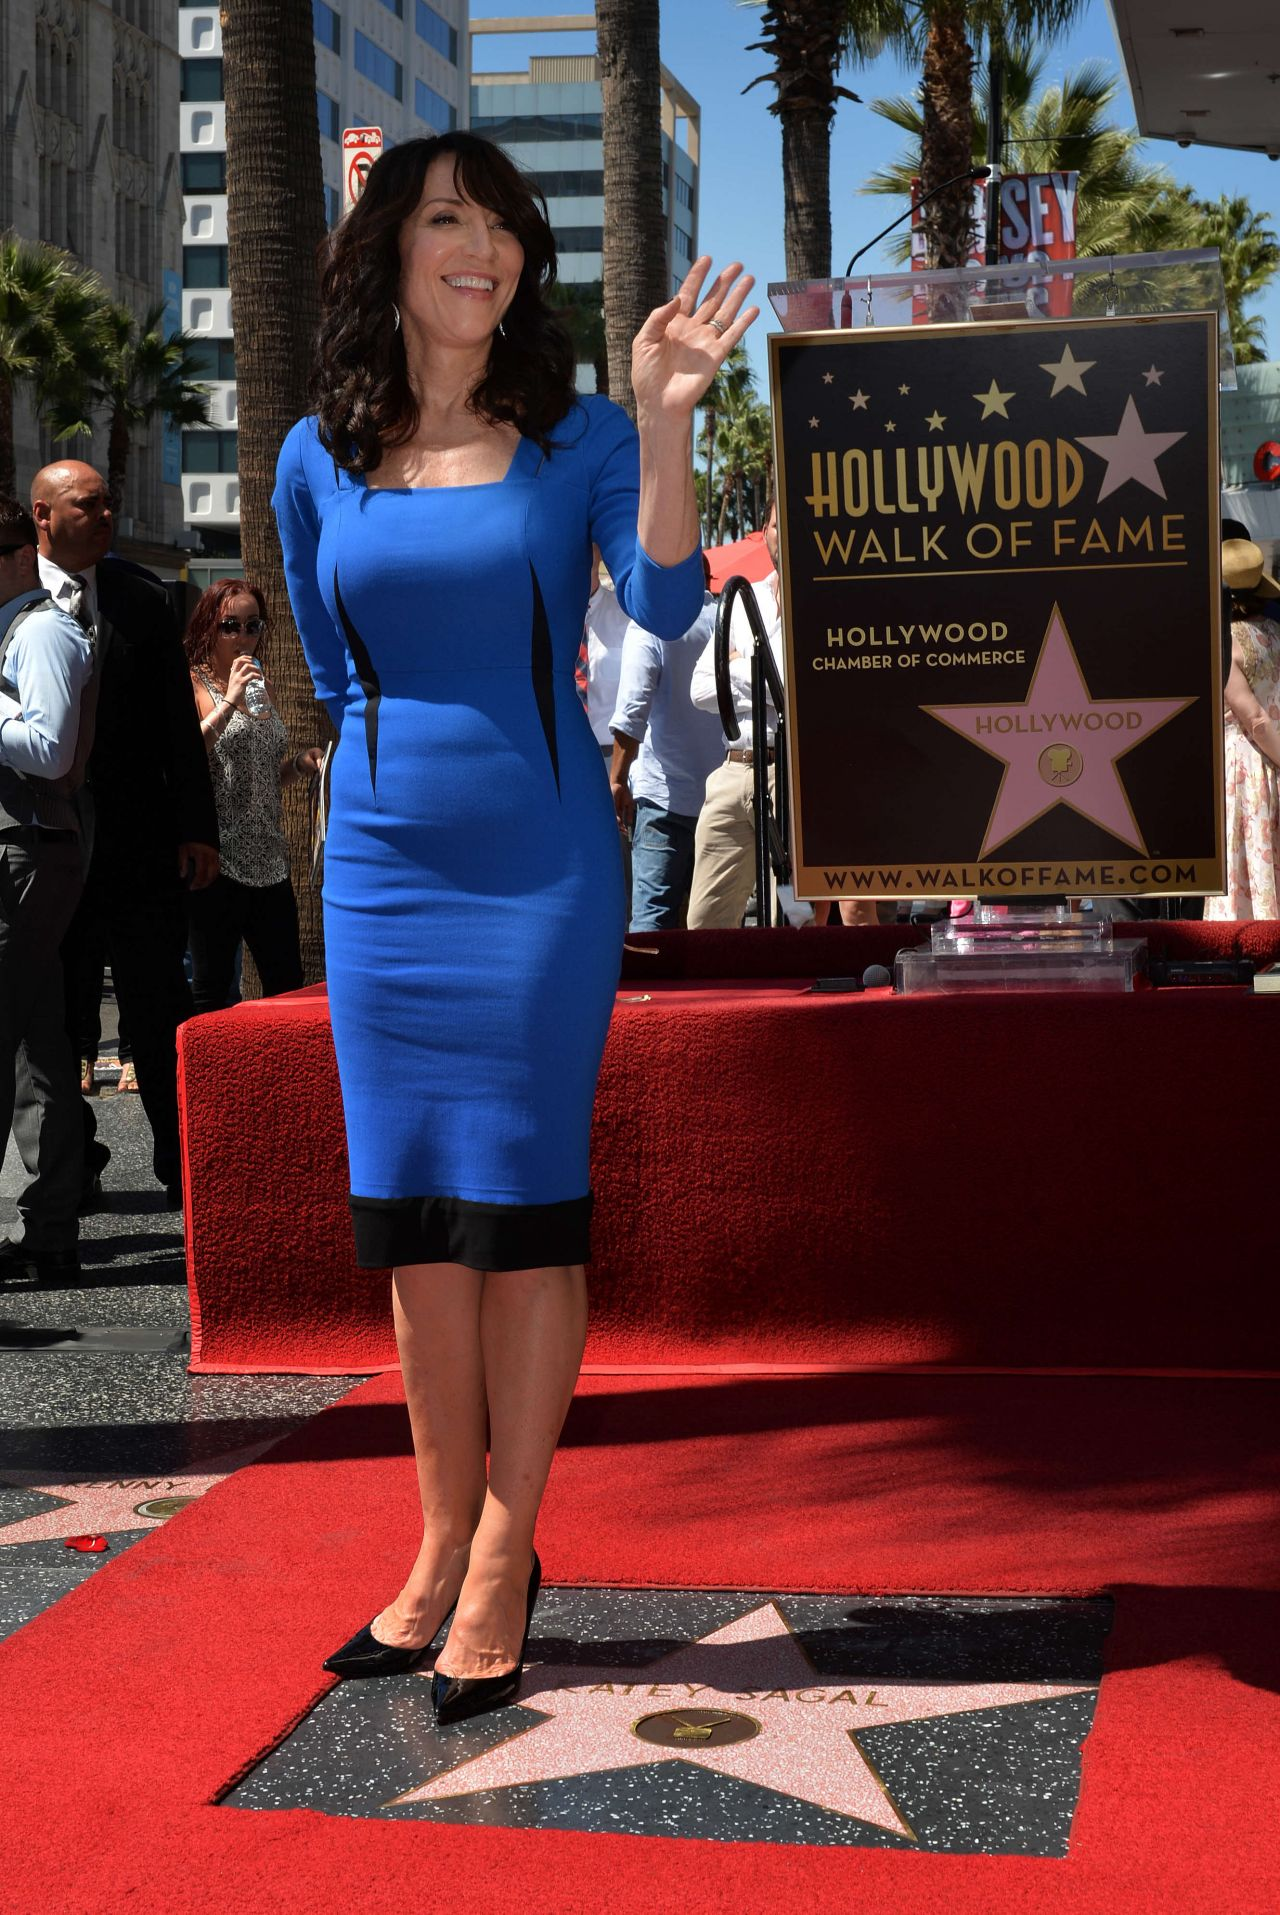 Katey Sagal - Hollywood Walk of Fame Ceremony - September 2014